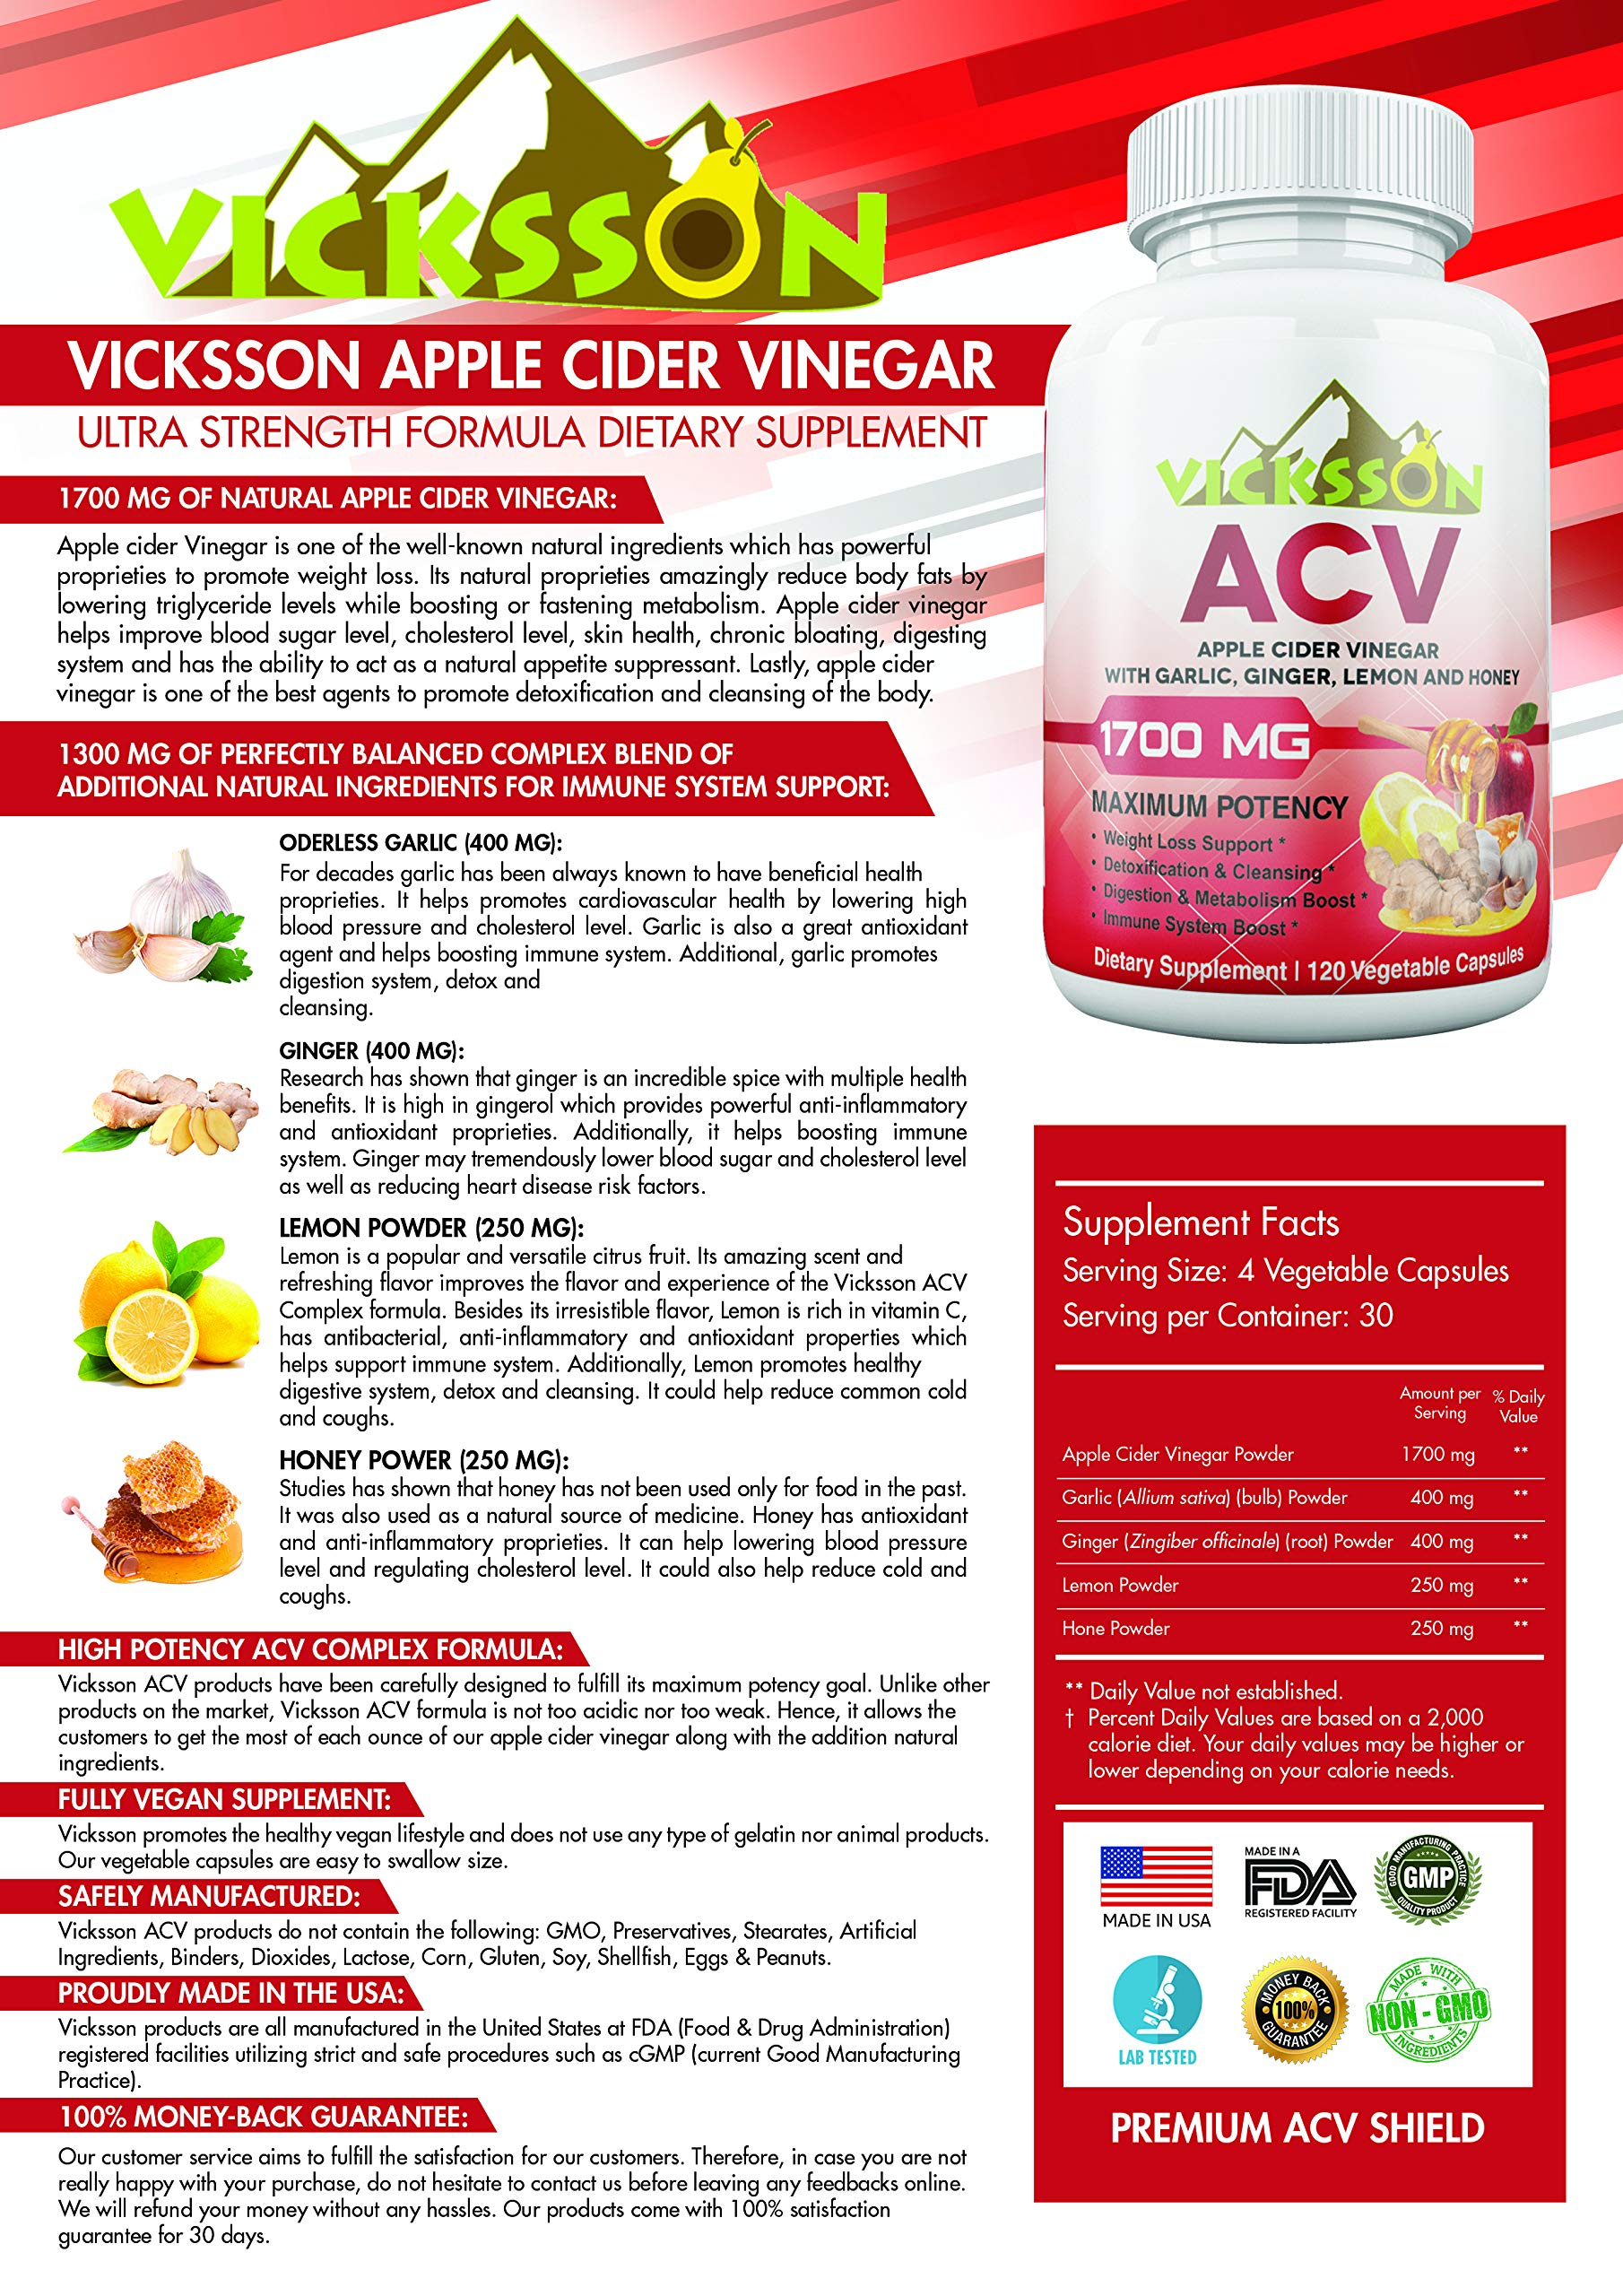 Vicksson Apple Cider Vinegar Pills 1700 mg of ACV with Garlic, Ginger, Lemon & Honey for Weight Loss, Detox, Cleanse, Appetite Suppressant, Metabolism & Immune Booster, Bloating Relief | 120 Capsules